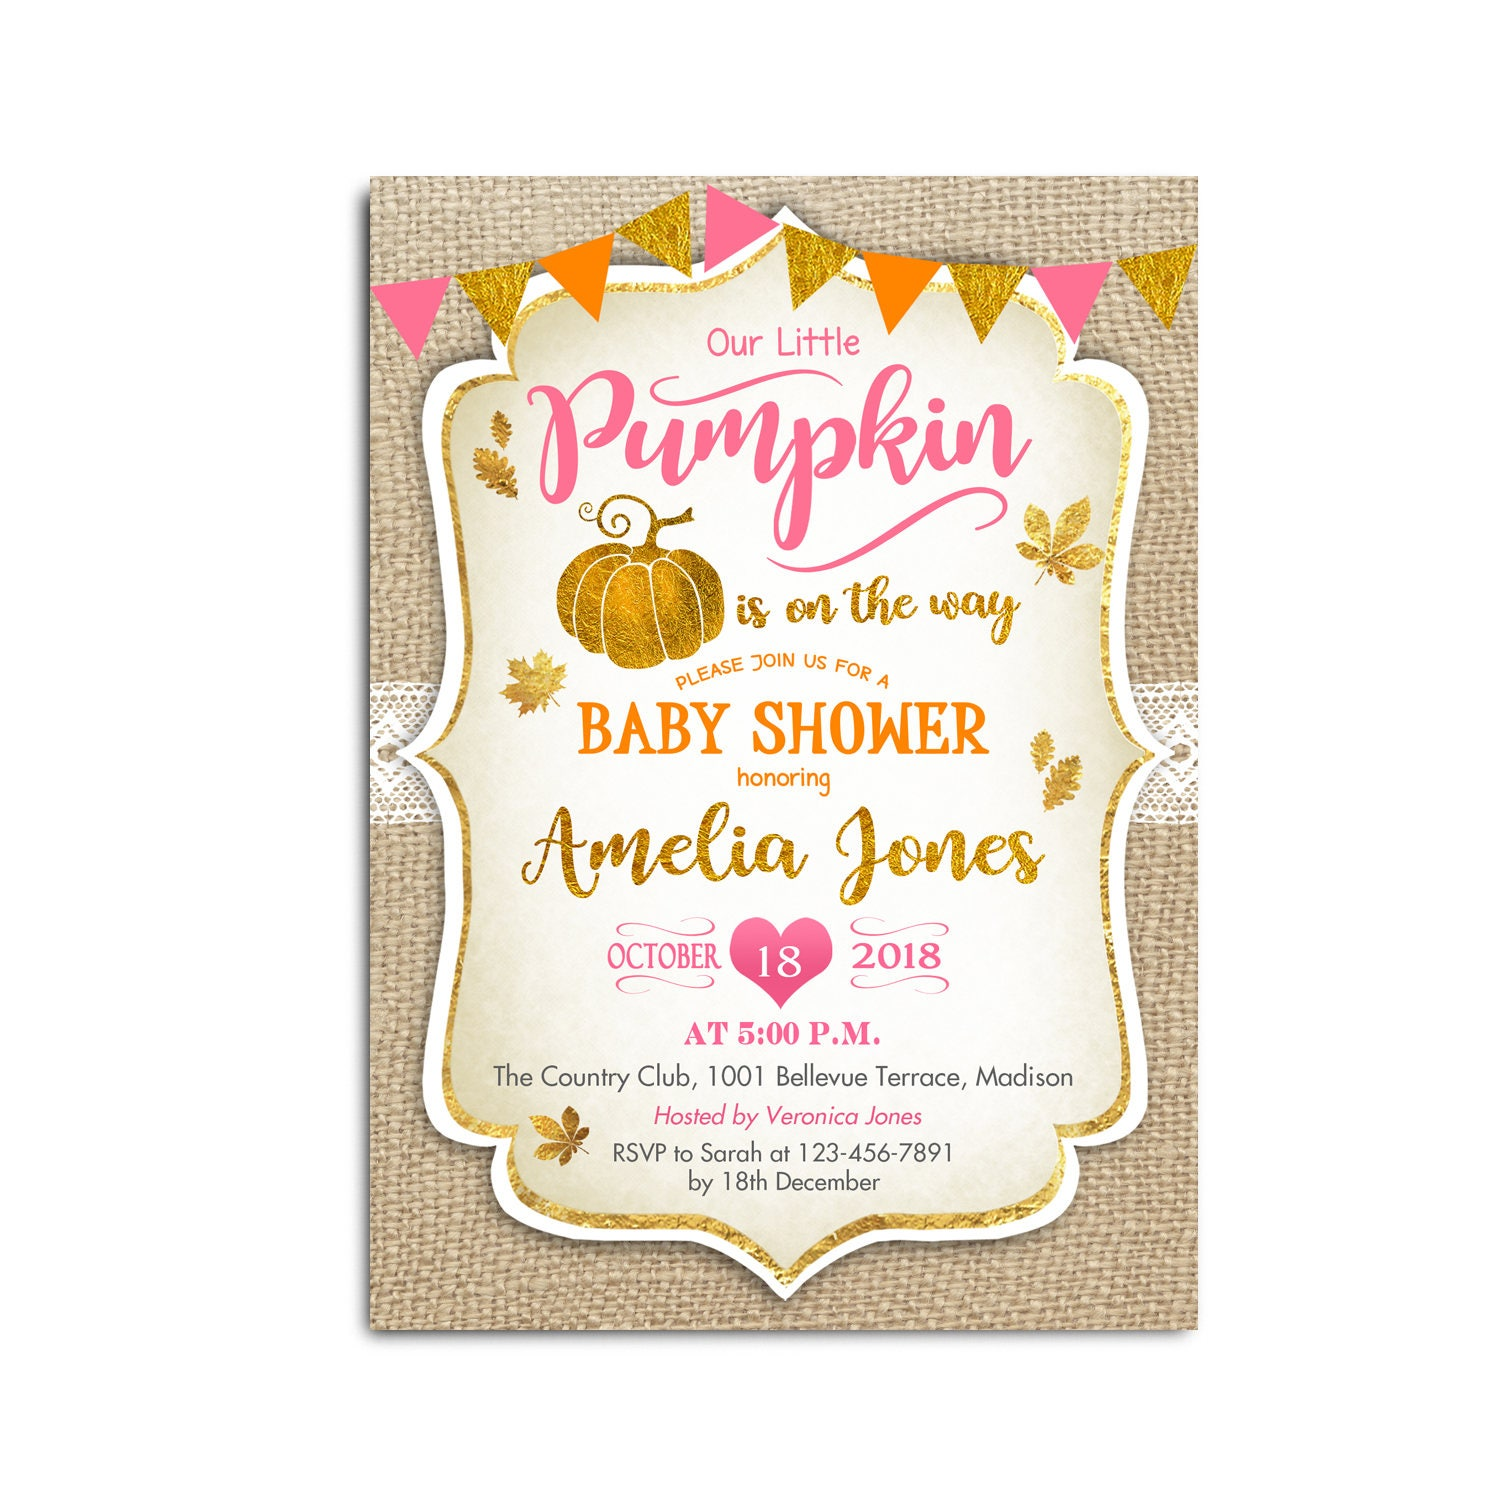 Rustic Fall Baby Shower Invitation Little Pumpkin Girl Glitter Gold Pink Peach